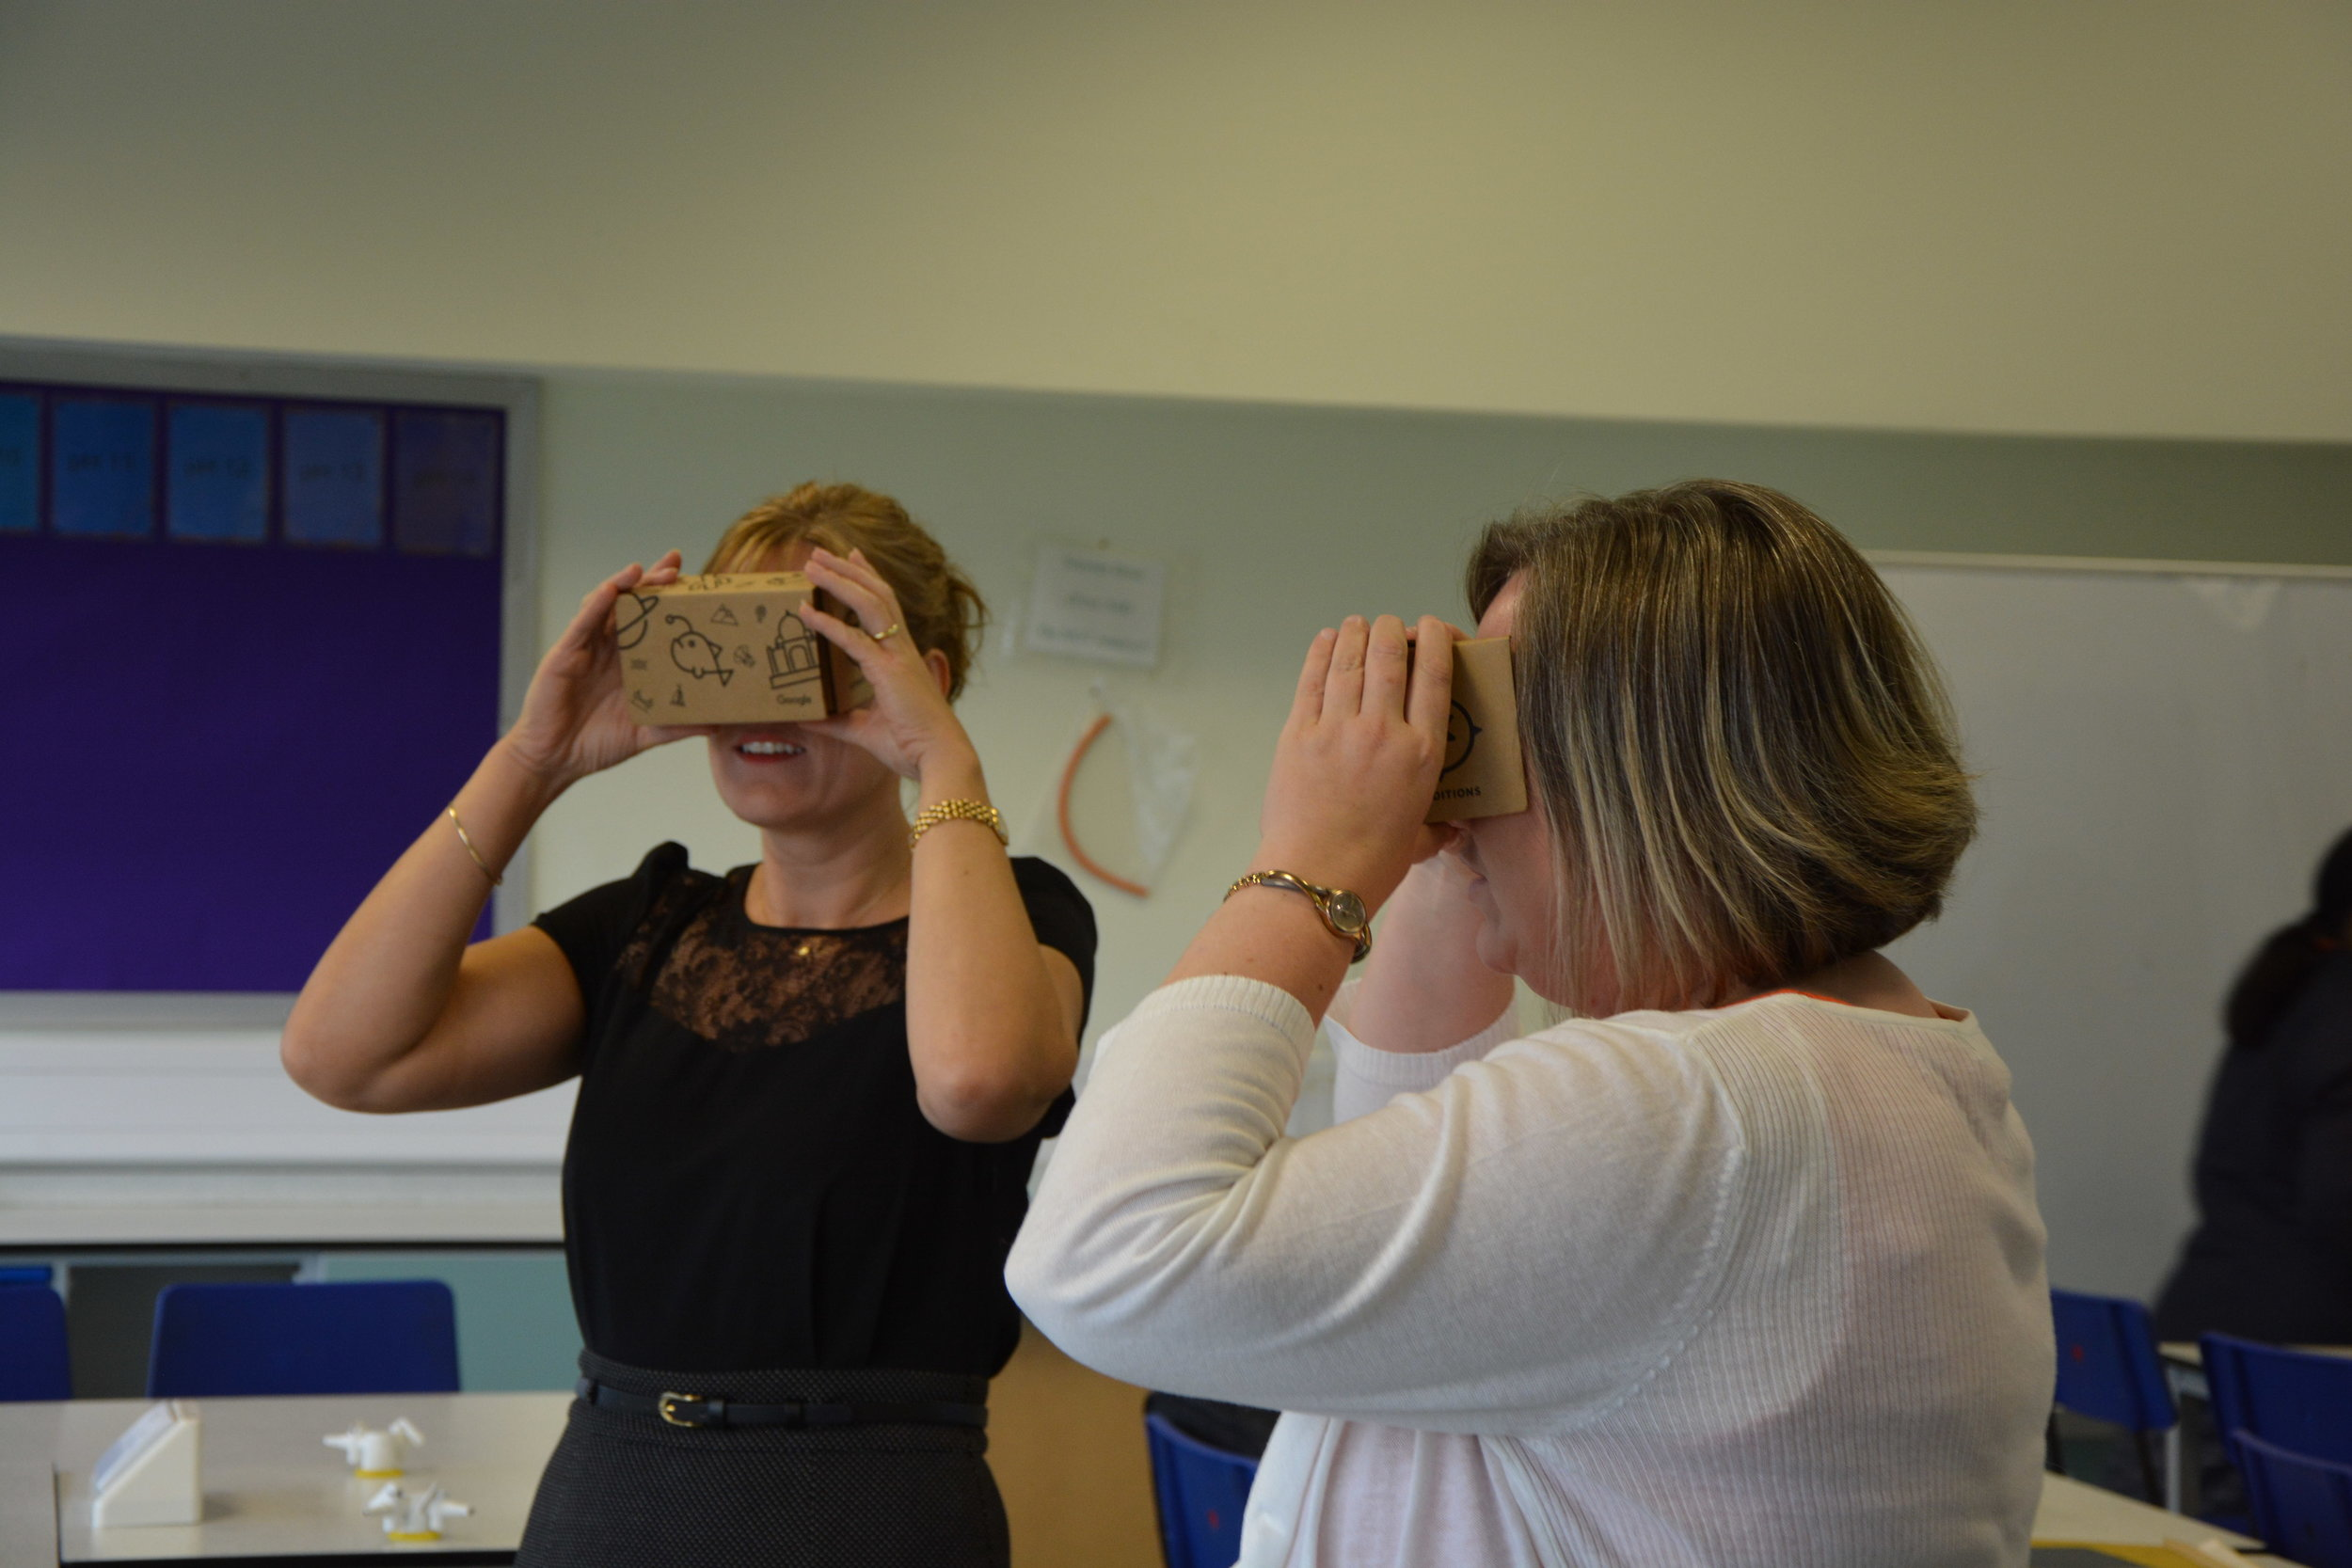 Two Science teachers looking at Google Expeditions via the Google Cardboard viewers (picture courtesy: Dr. Duncan Banks)